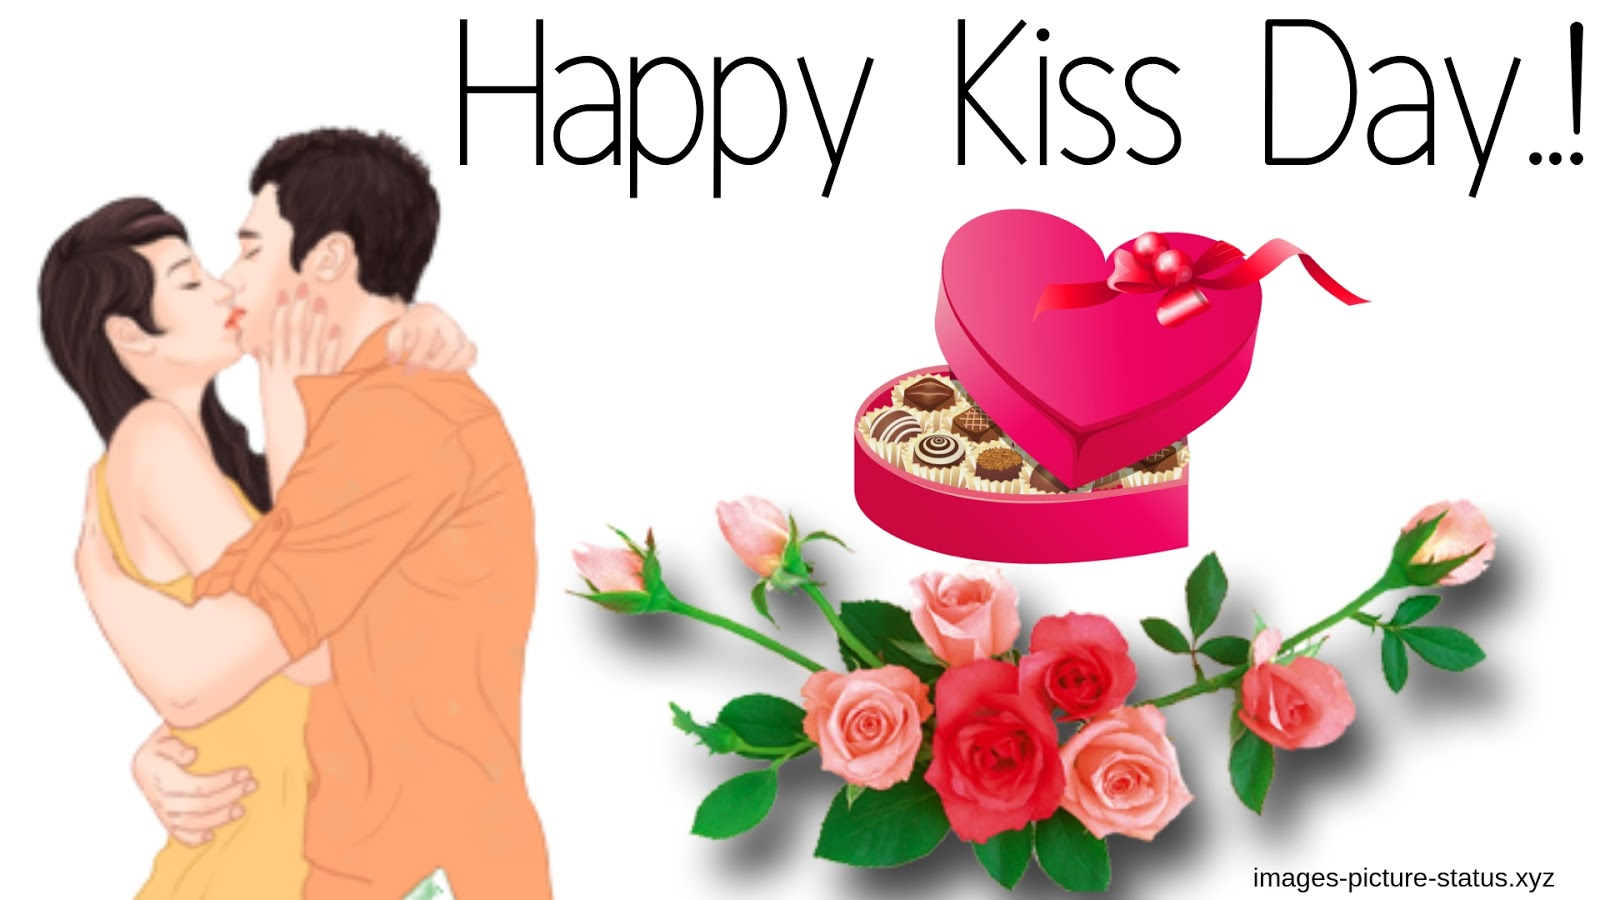 happy kiss day wishes images photos wallpapers pic for happy kiss day wishes images photos